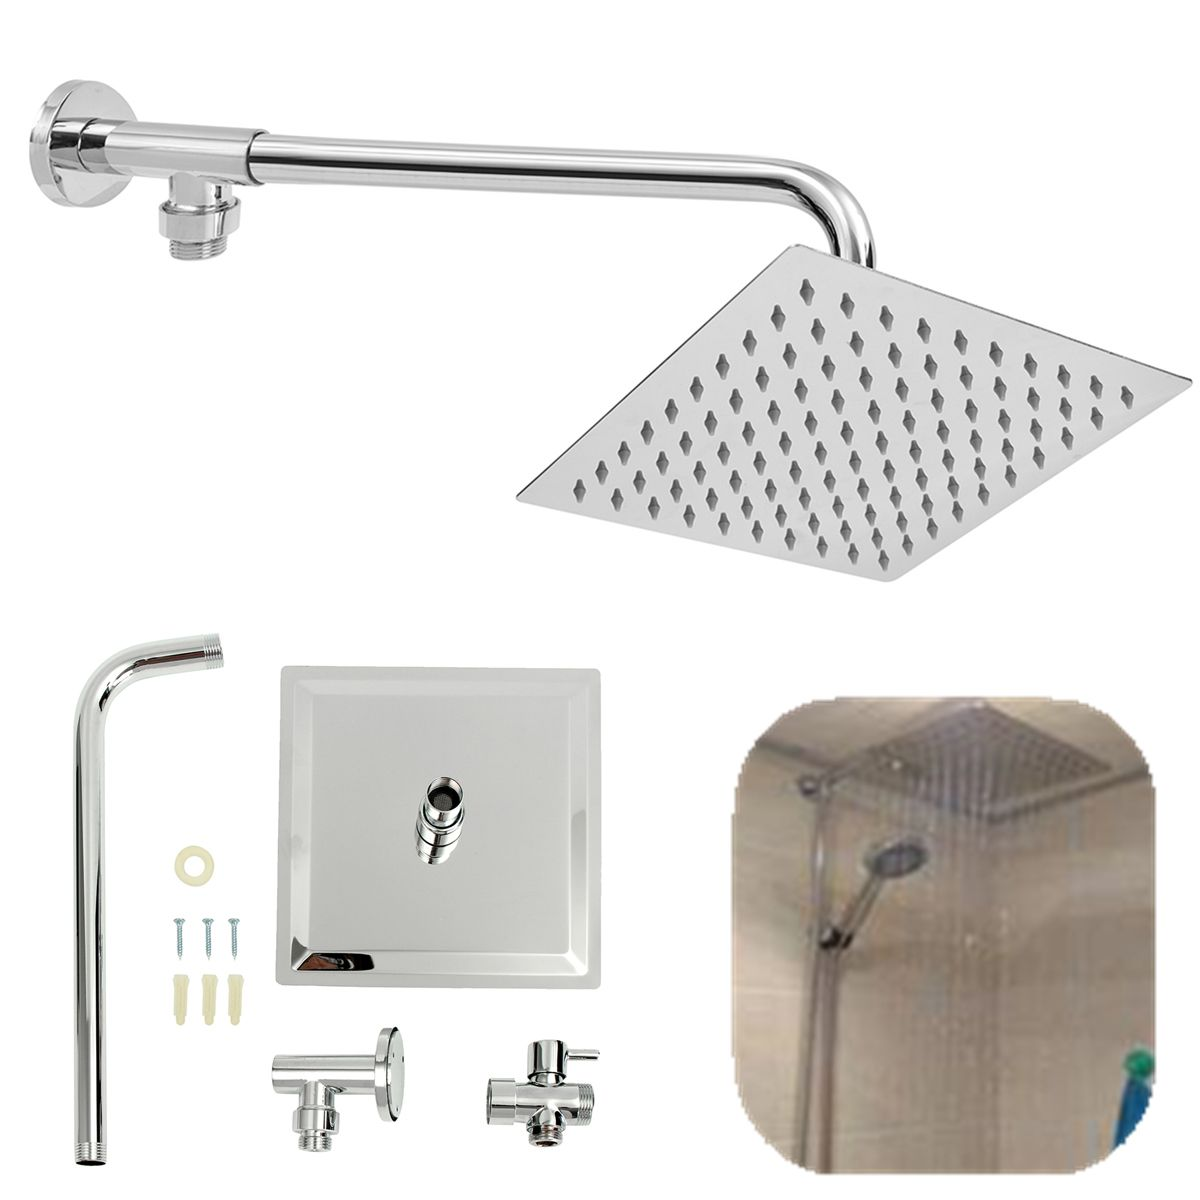 8inch 304 Stainless Steel Square Shower Head Extension Arm Bottom